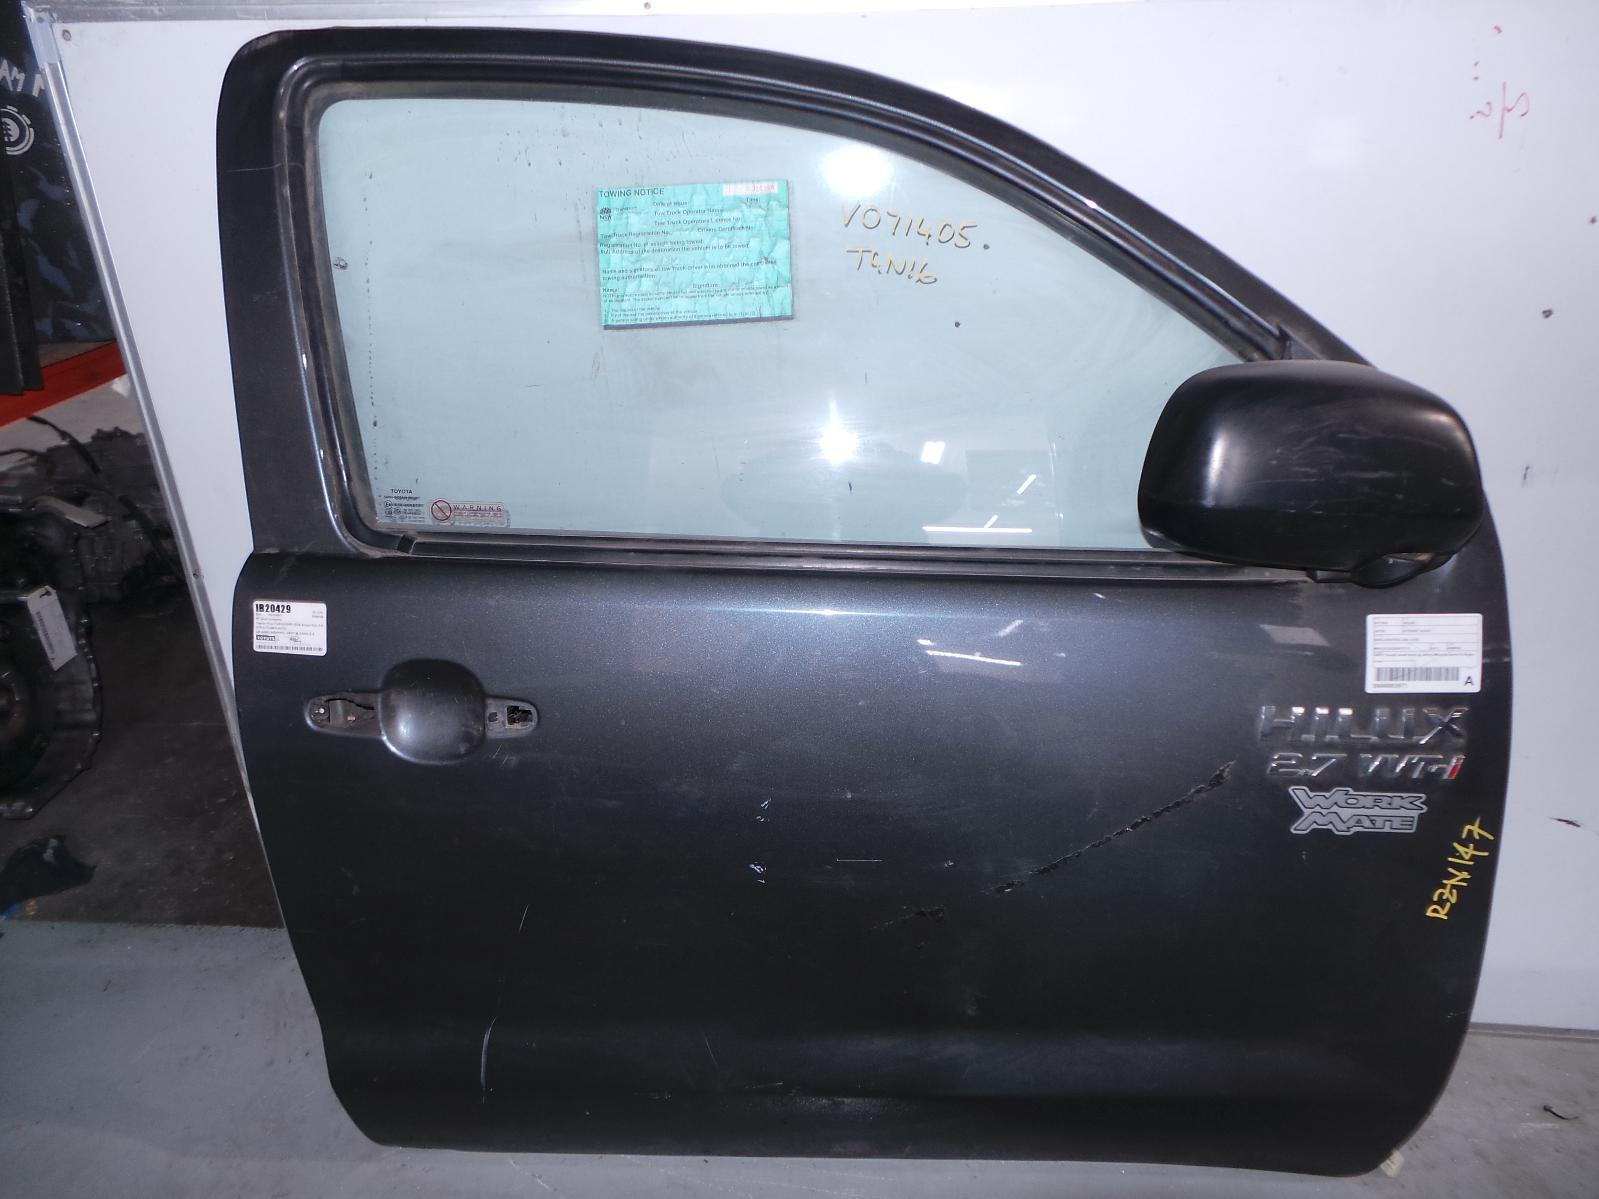 TOYOTA HILUX, Right Front Door, SINGLE/EXTRA CAB, 03/05-08/15